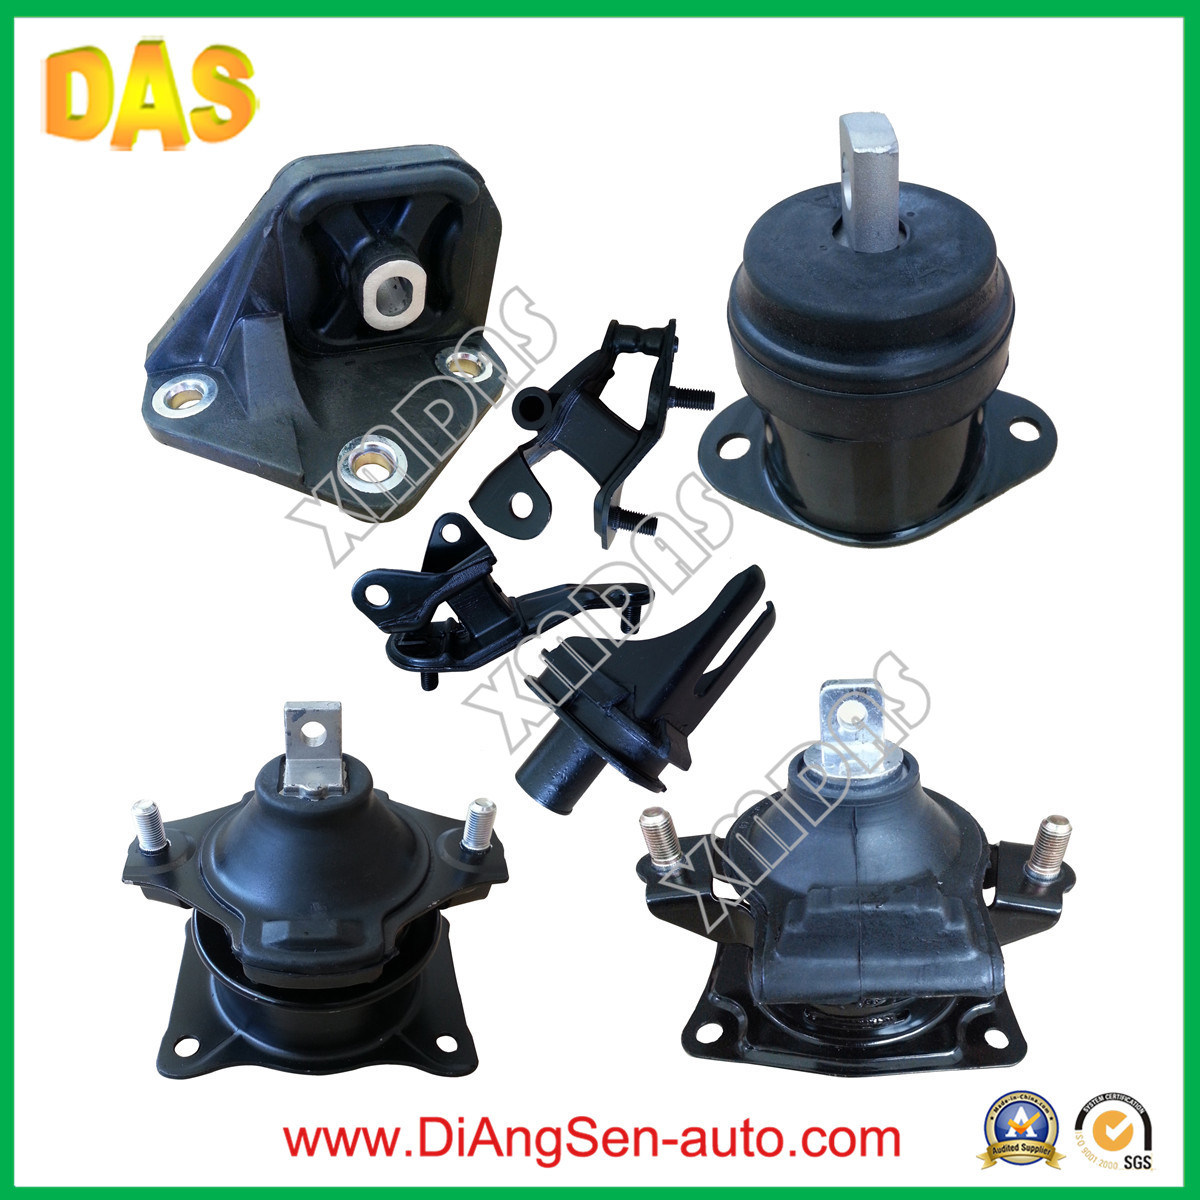 China Car Rubber Auto Parts For Honda Accord Engine Motor Mounting 2011 Ridgeline Suspension Control Arm Front Left Lower W0133 50810 Sda A02